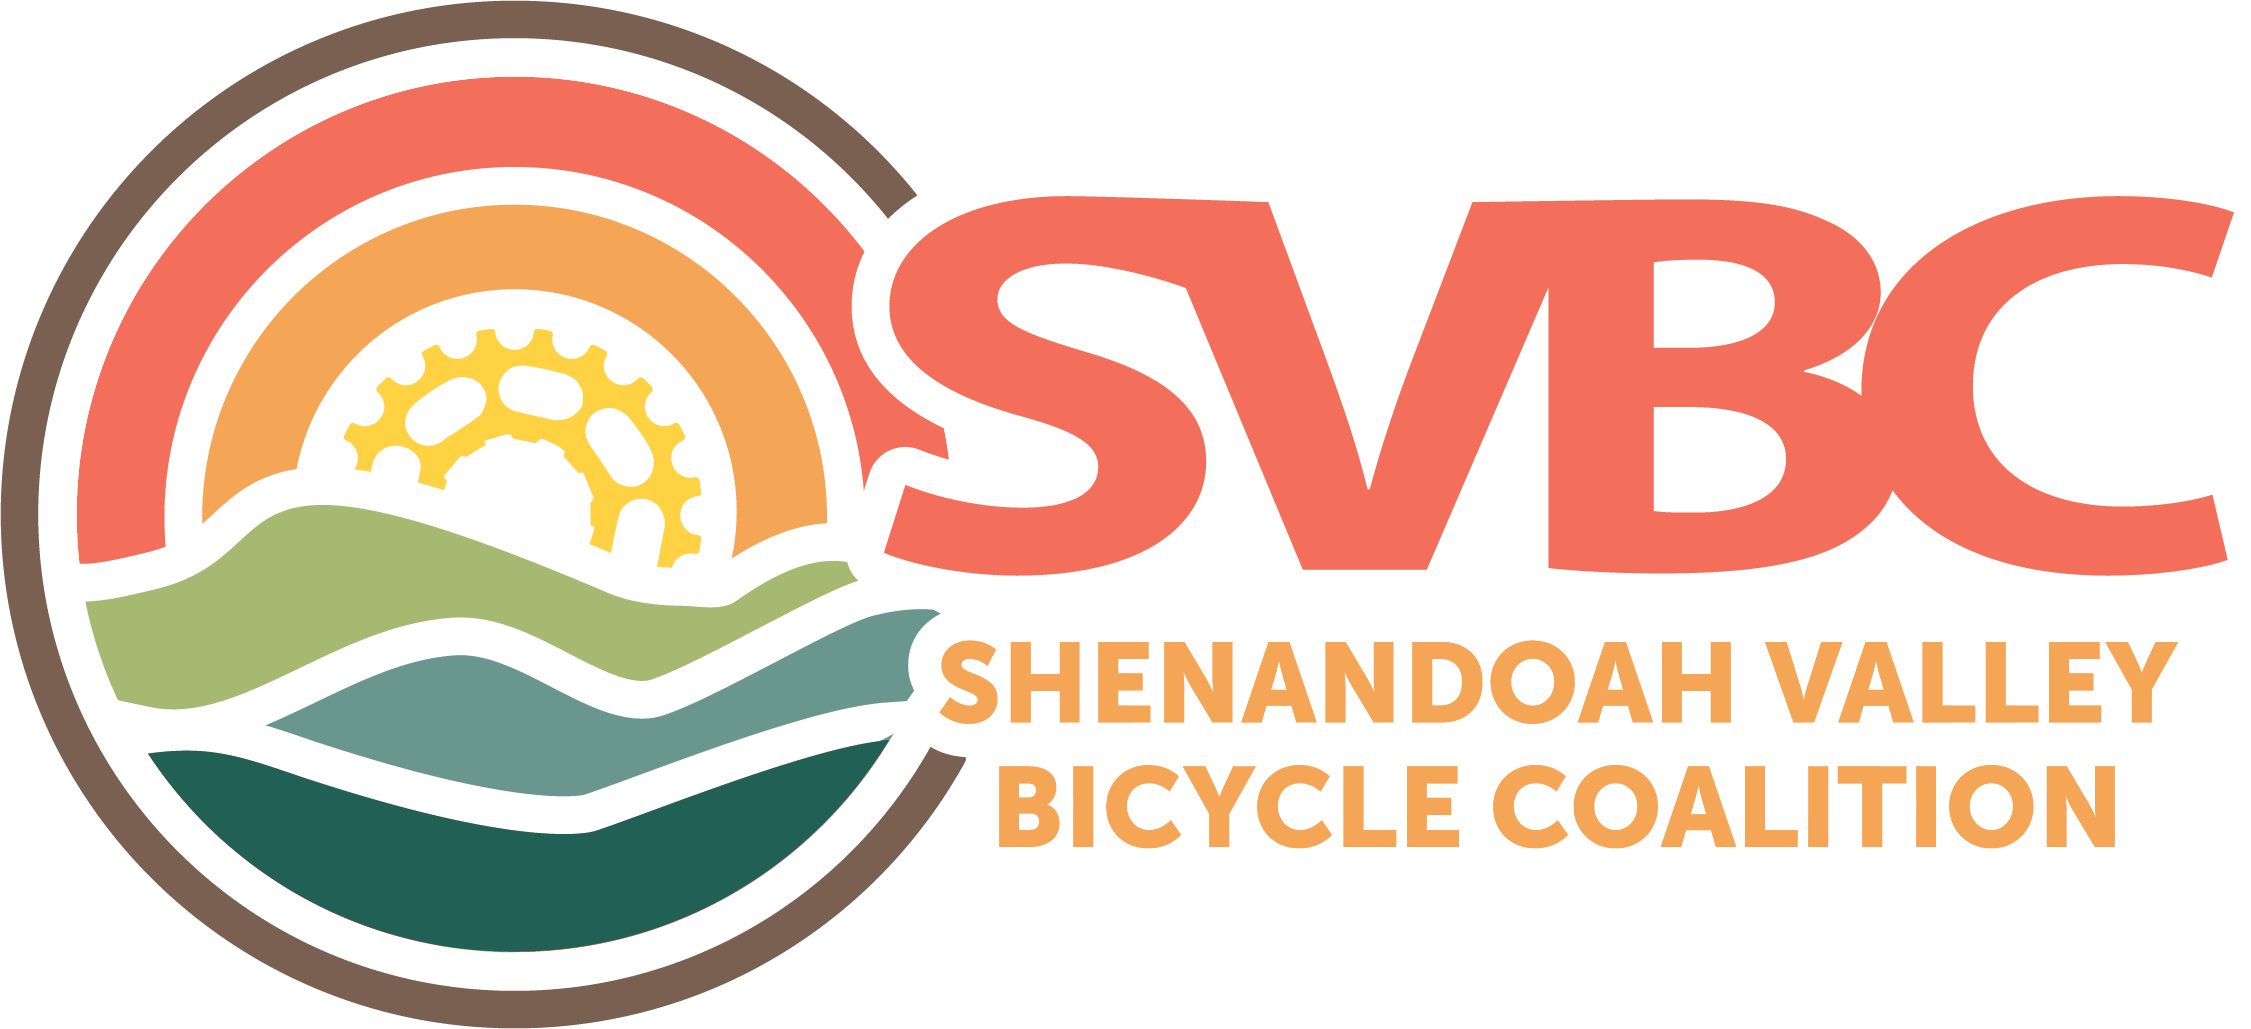 Shenandoah Valley Bicycle Coalition